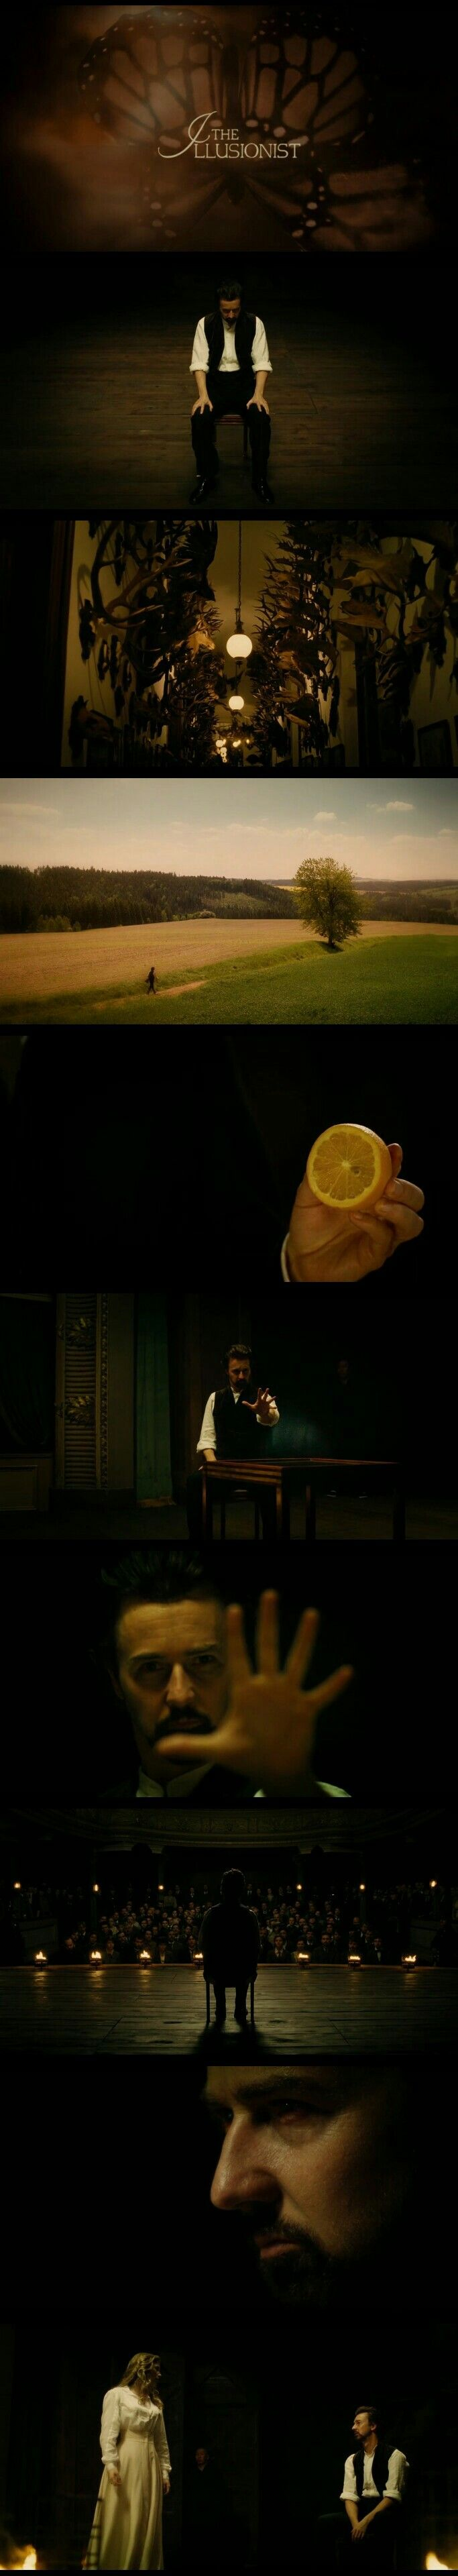 "Edward Norton as ""Eisenheim The Illusionist"" in The Illusionist(2006)"